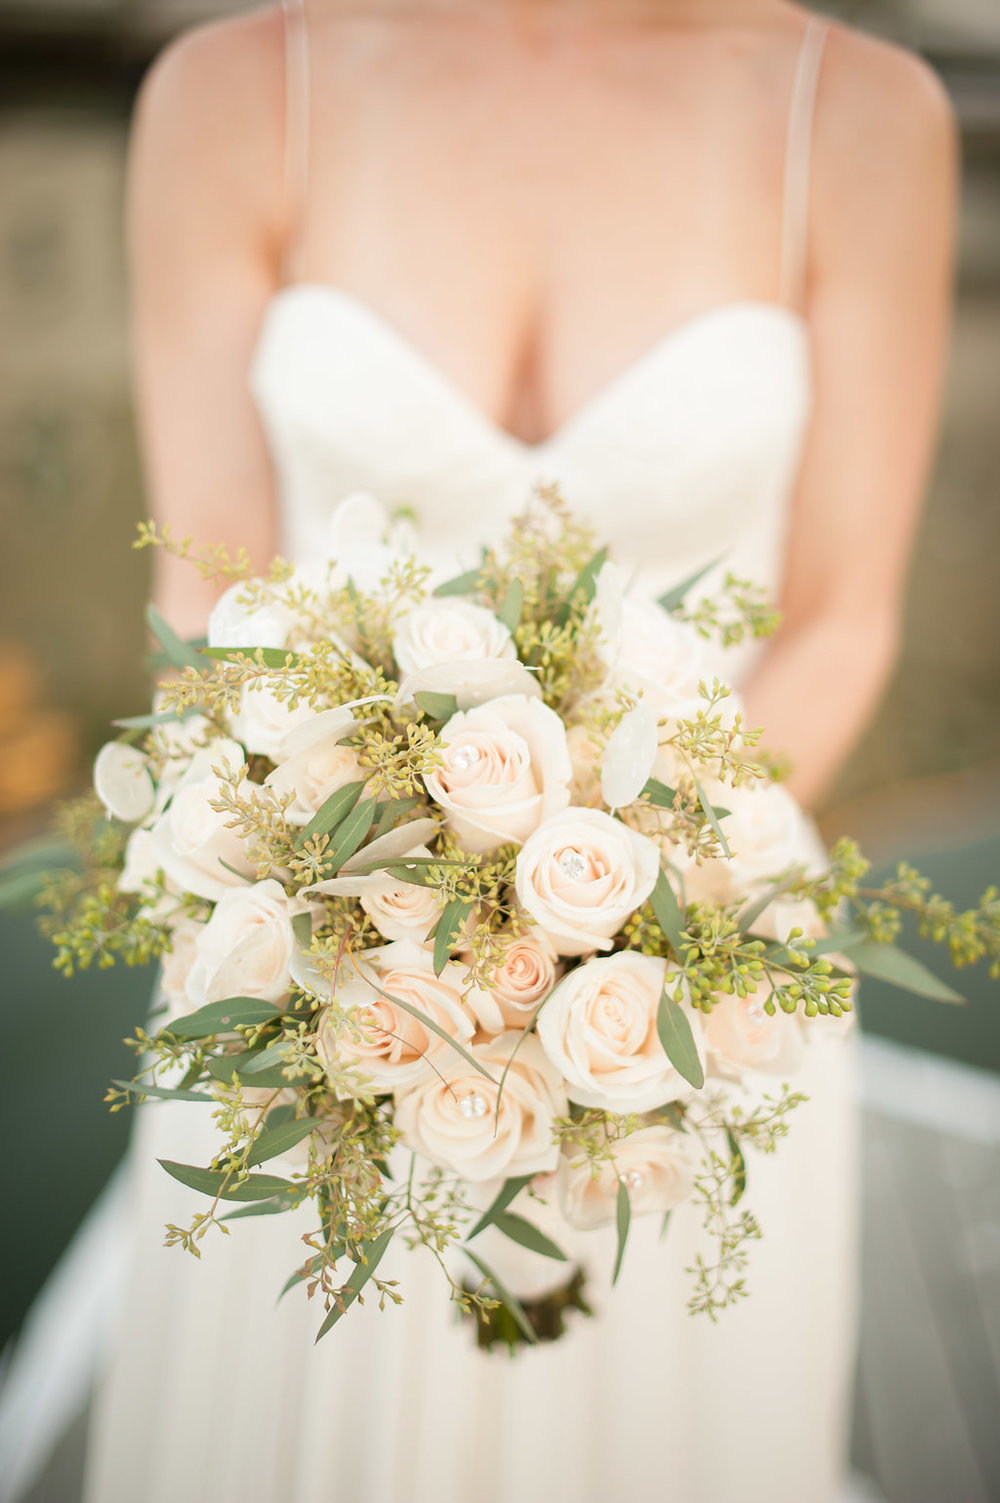 The bride's bouquet was kept simple and sophisticated with all ivory roses, greenery, and mother of pearl branches to resemble shells.